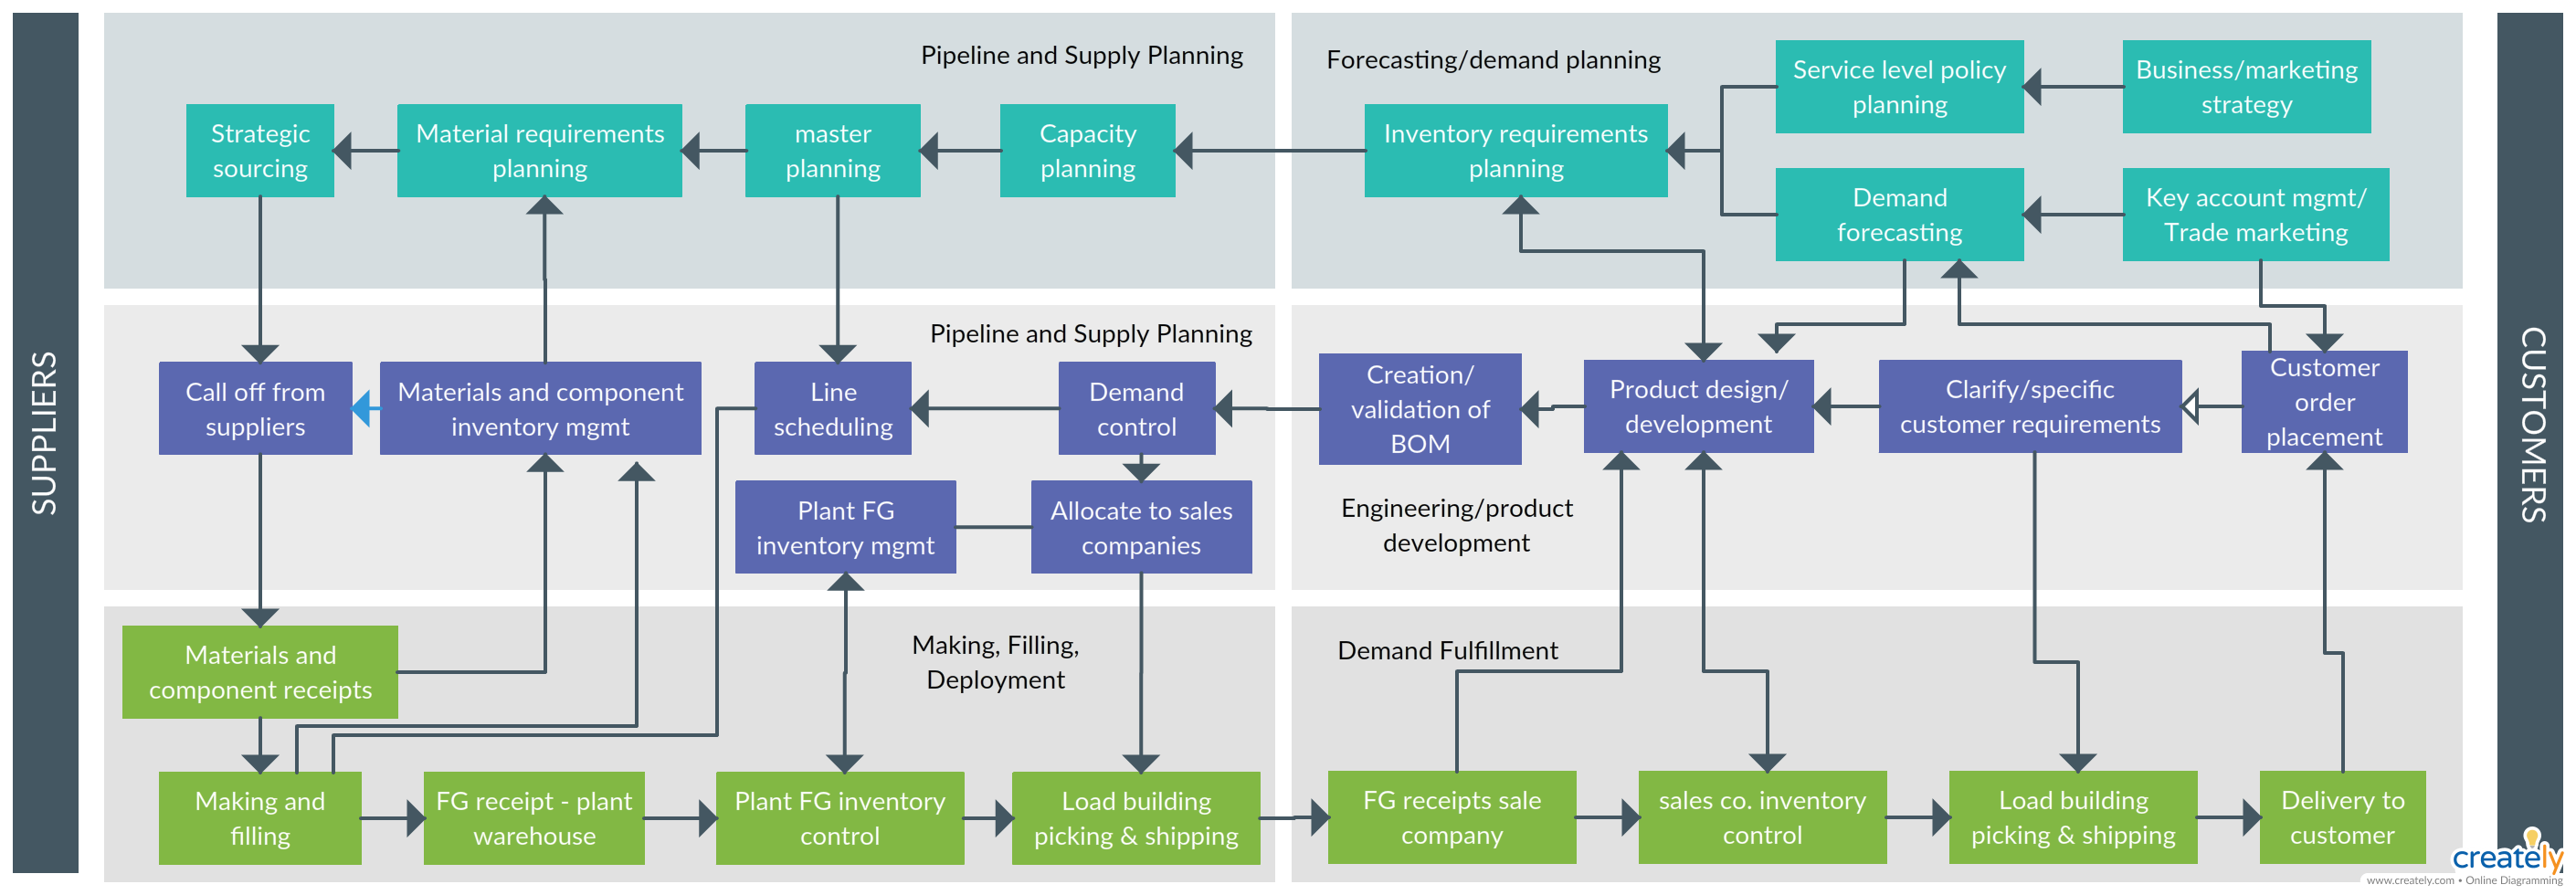 Supply Chain Management Integrates Key Business Processes From End User Through Original